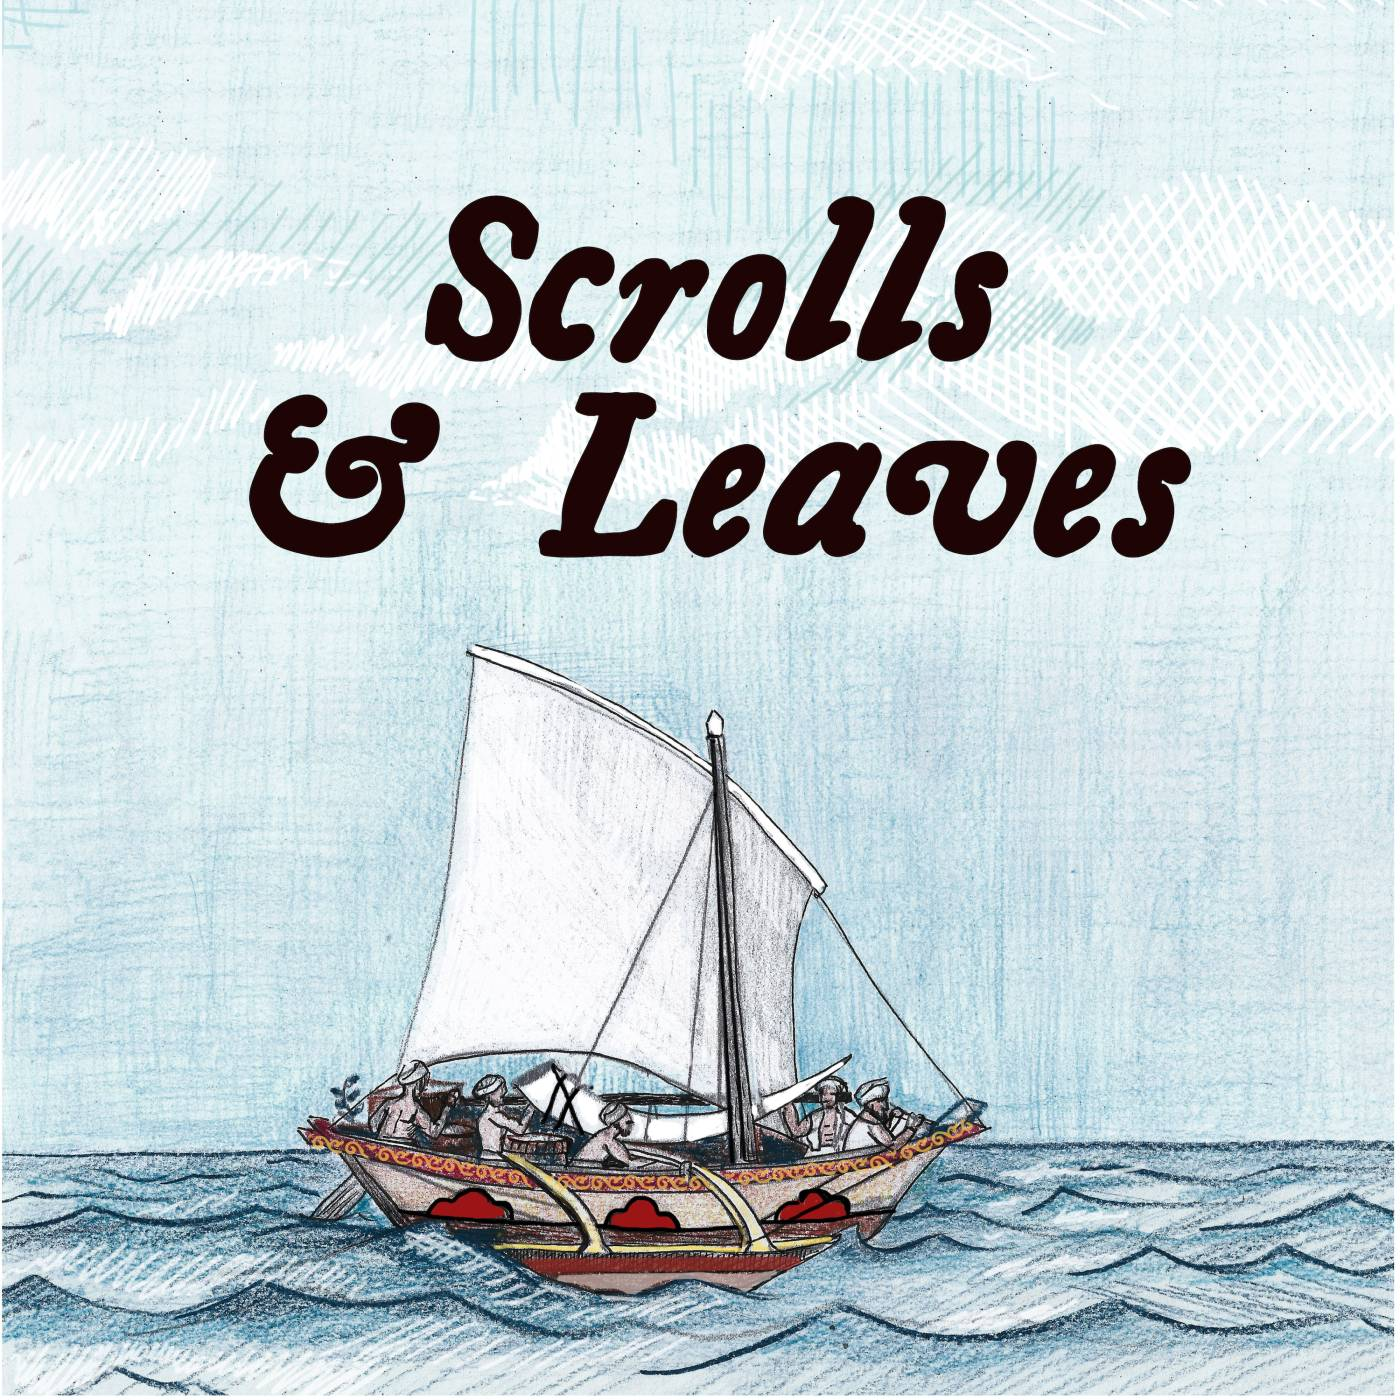 Scrolls & Leaves